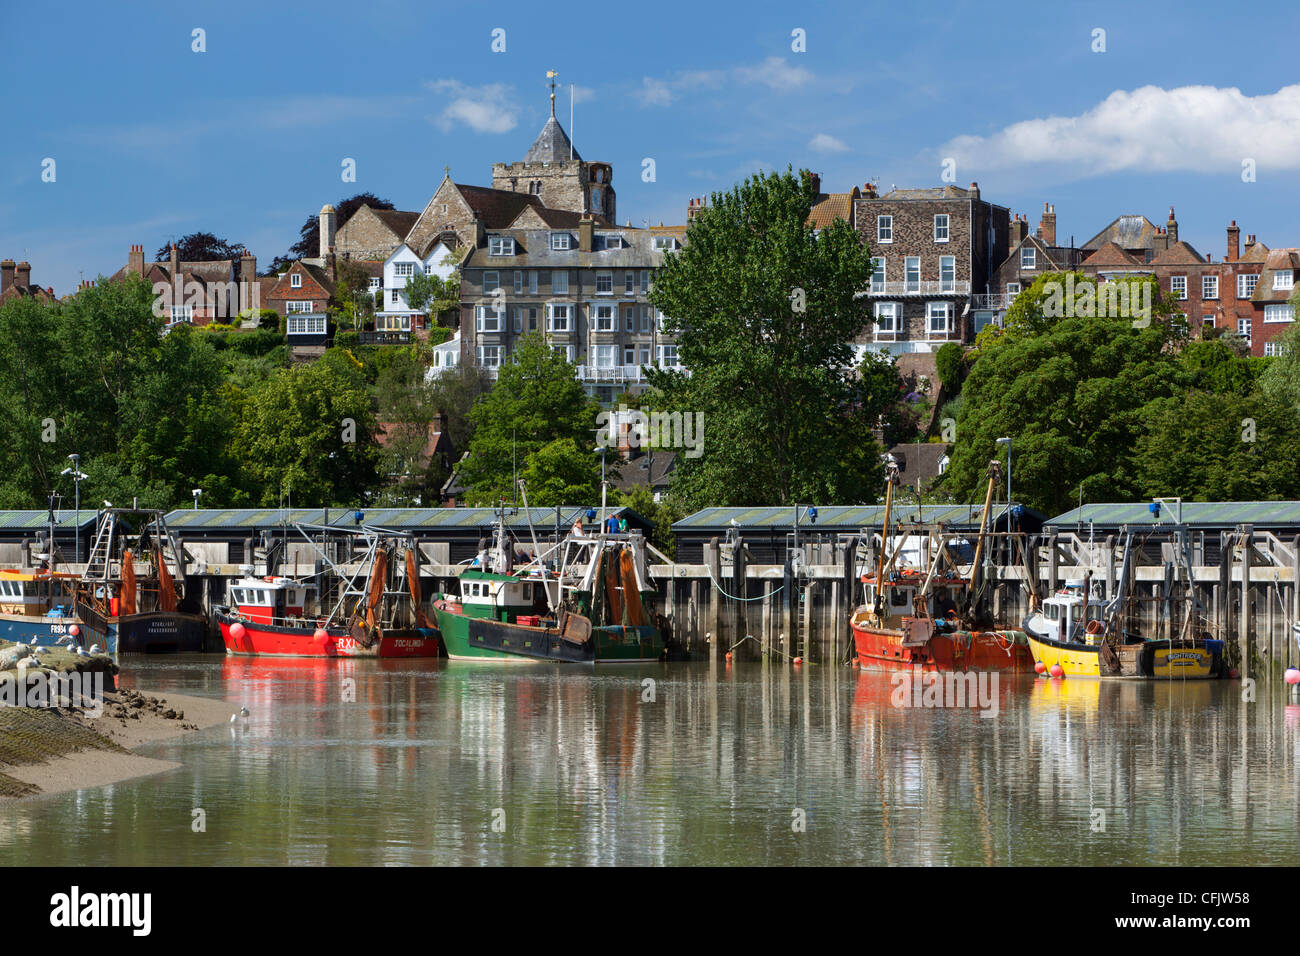 Port de pêche sur la rivière Rother, vieille ville, Rye, East Sussex, Angleterre, Royaume-Uni, Europe Photo Stock